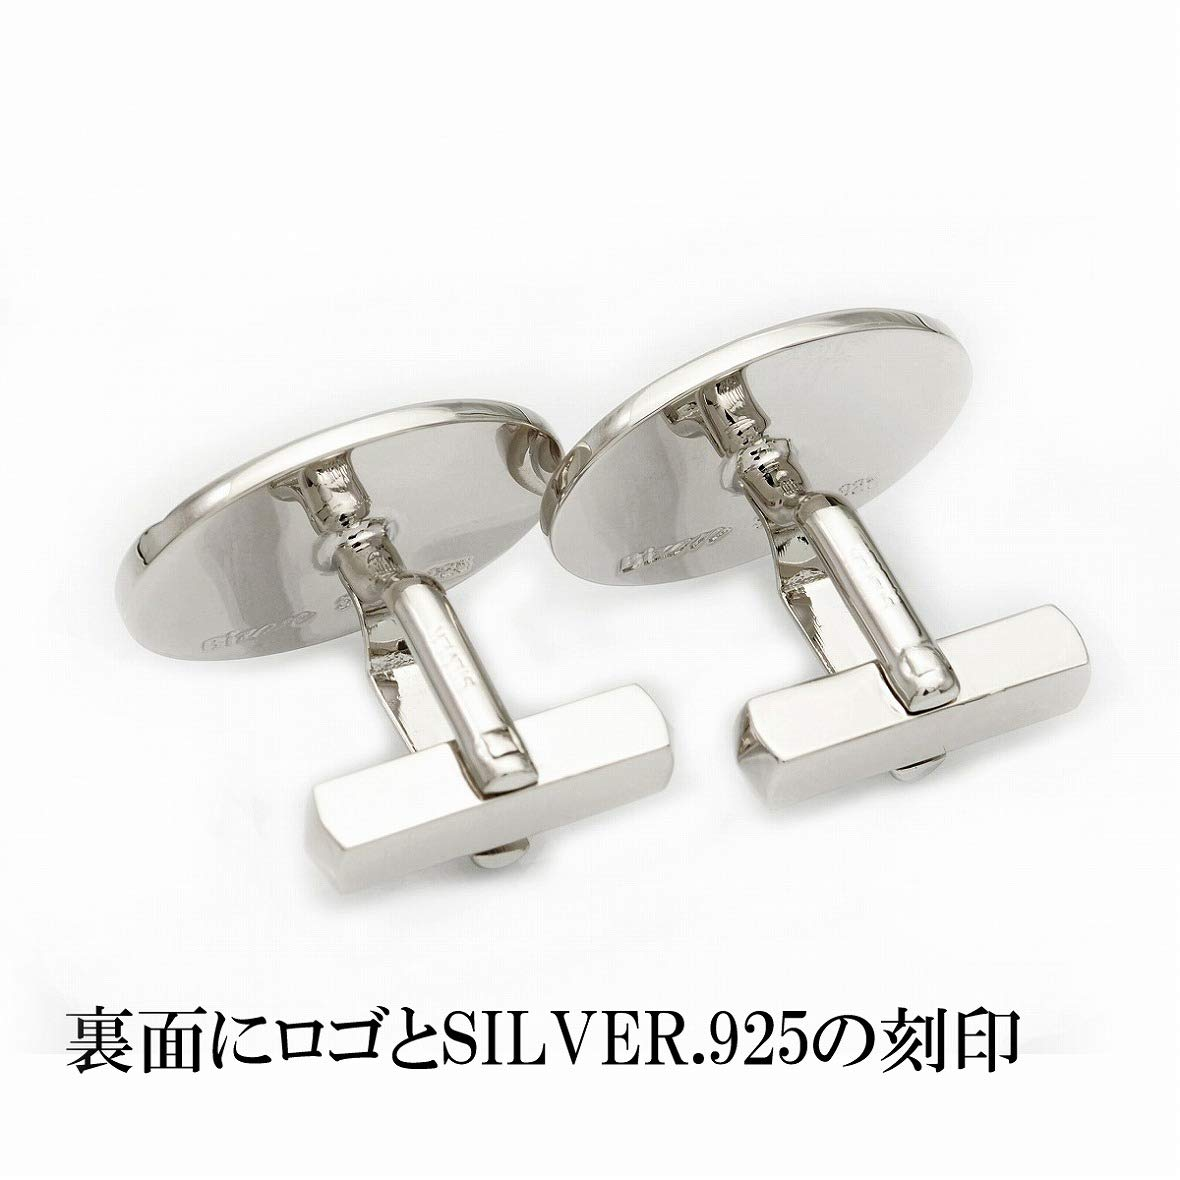 Stainless Steel Star Cuff Links 18.25x16.87MM